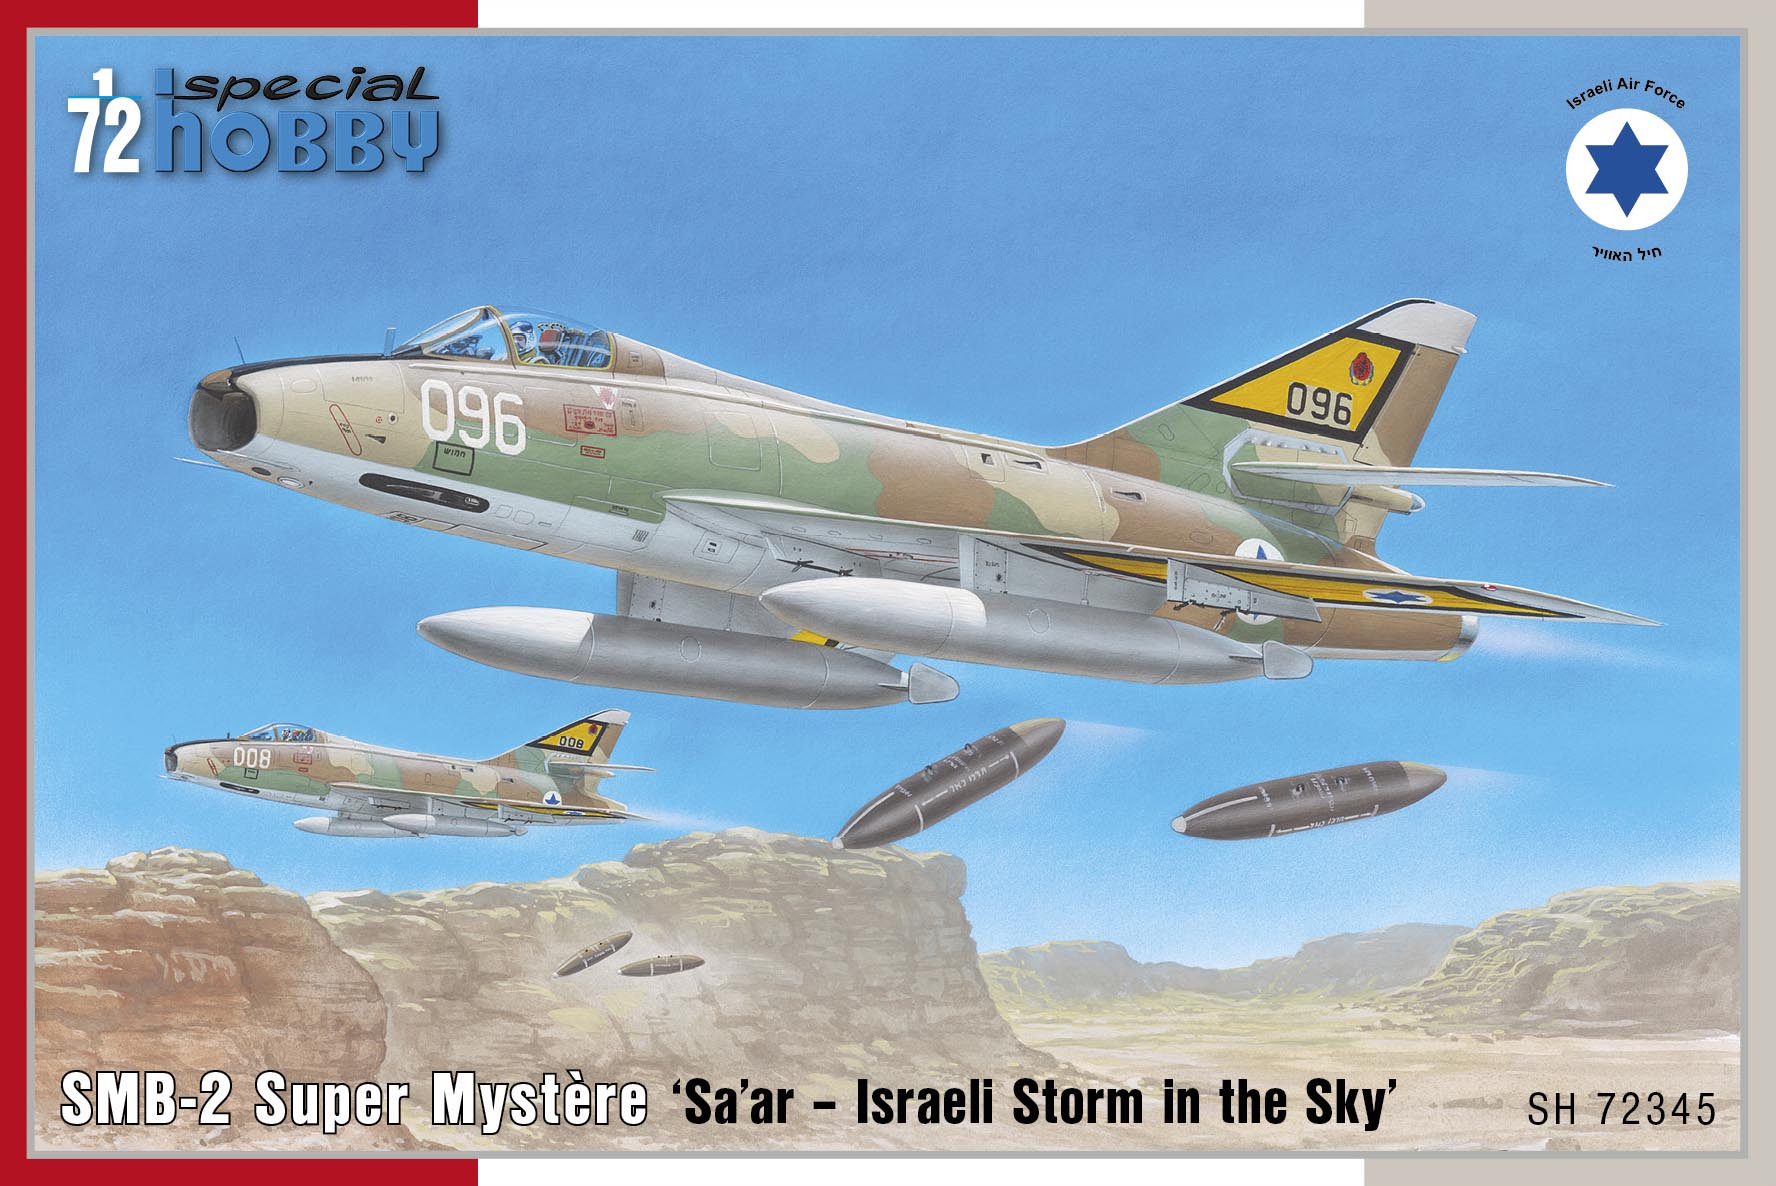 Special Hobby SMB-2 Super Mystere 'Sa'ar - Israeli Storm in the Sky'